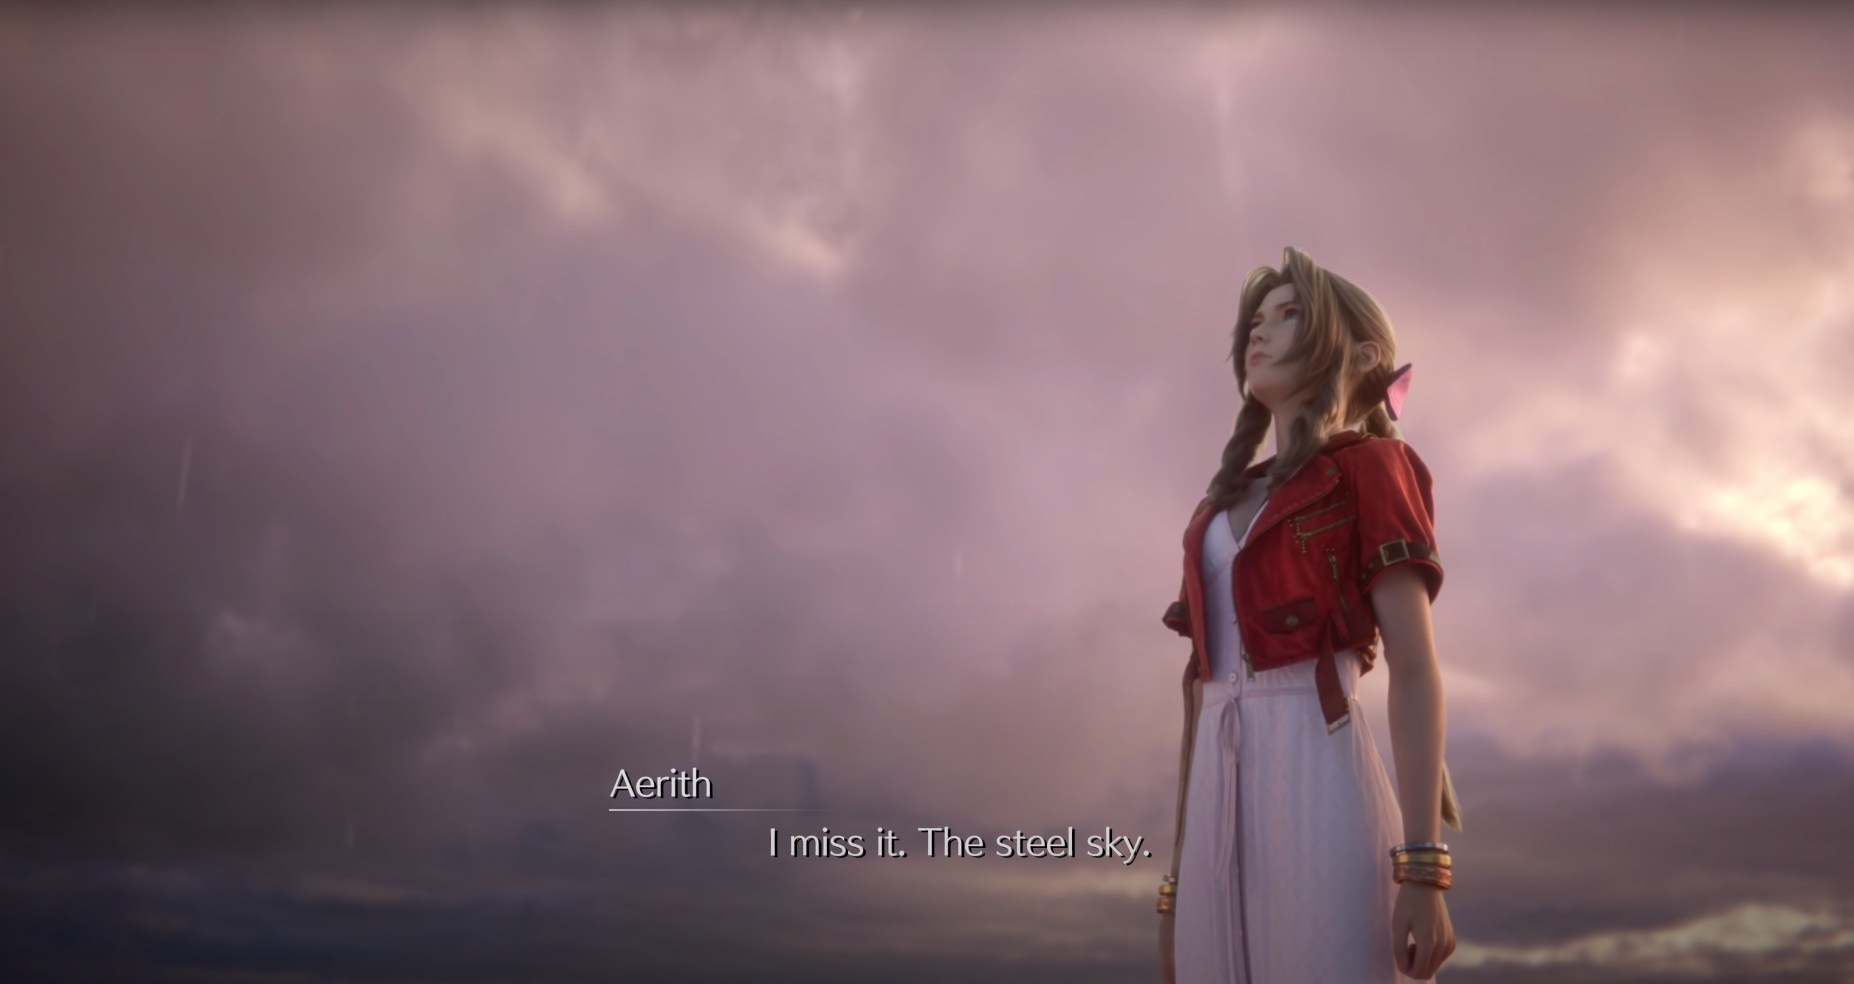 Aerith misses the steel sky